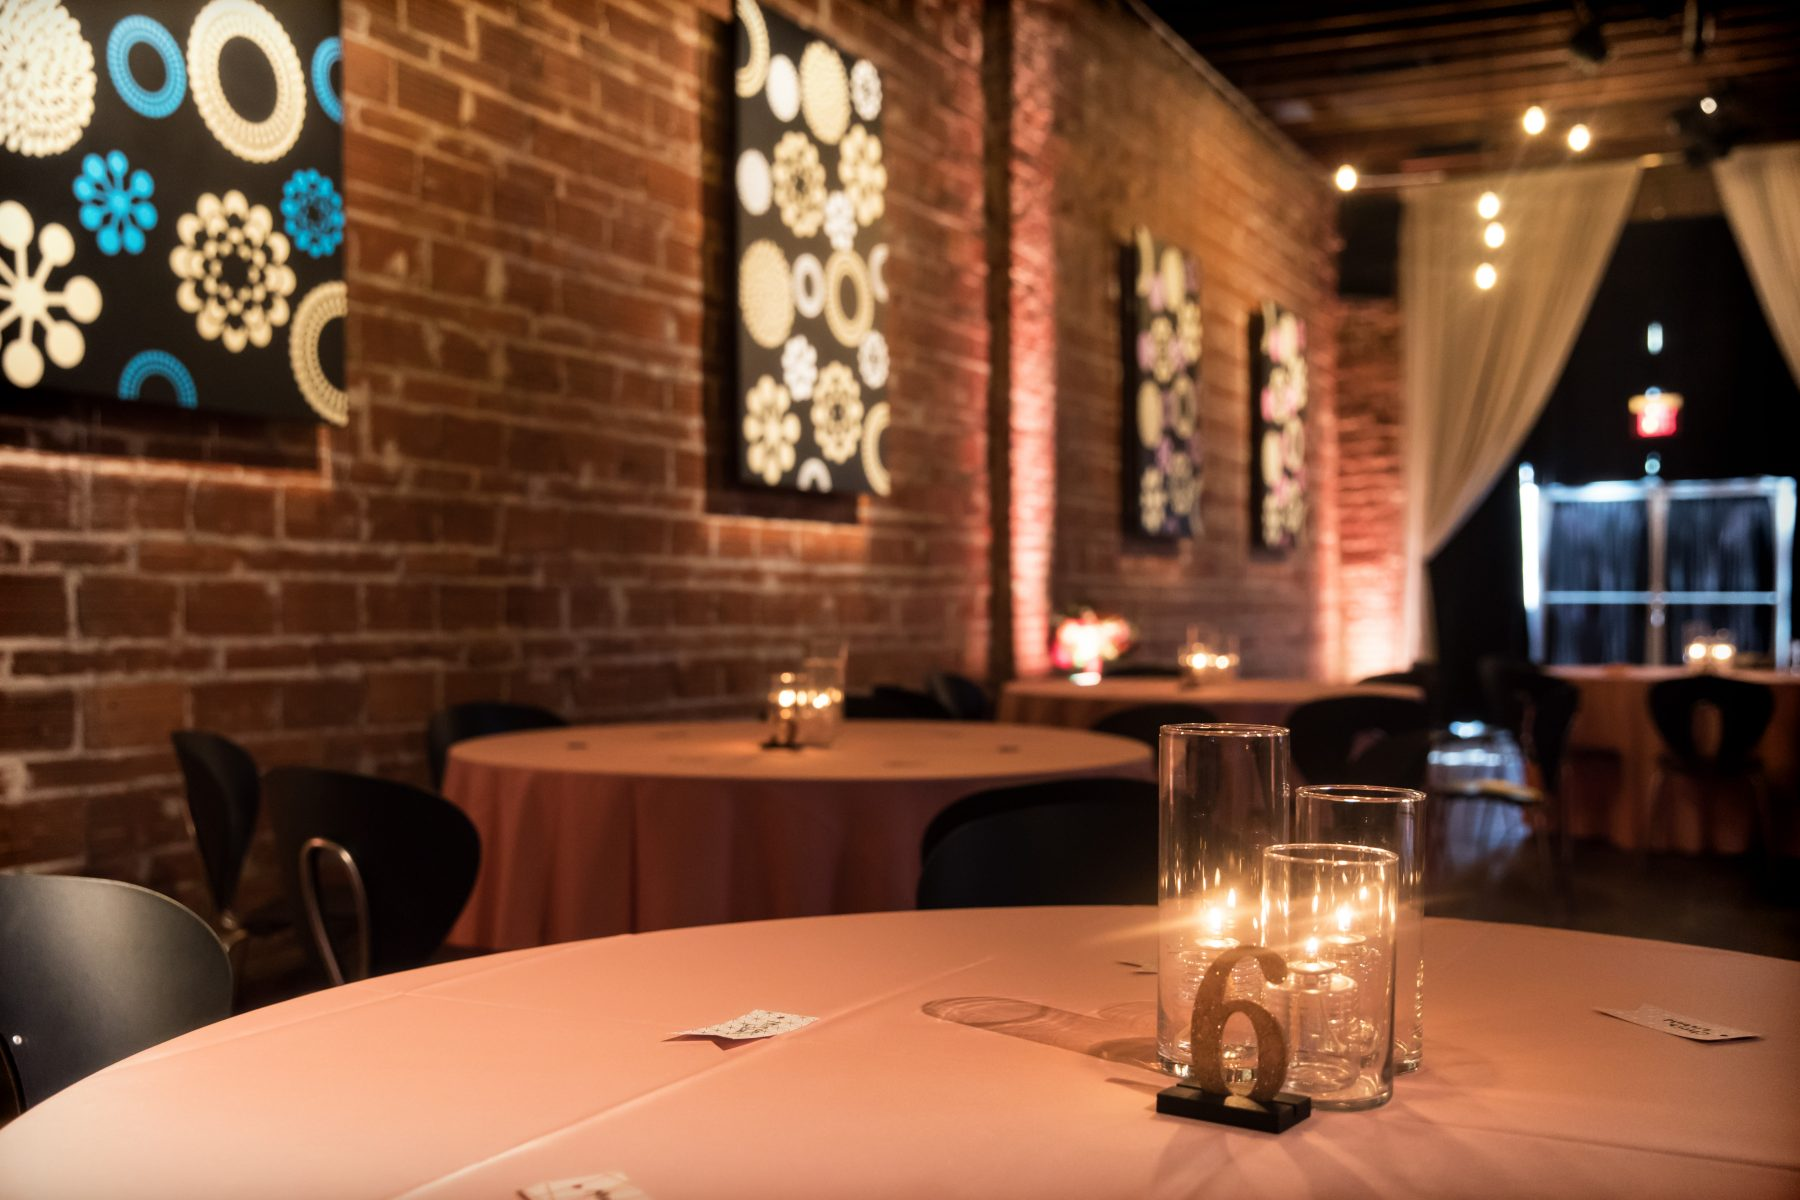 Minimalist wedding decor and centerpiece at candlelight reception at Historic Venue NOVA 535 in Downtown St. Pete